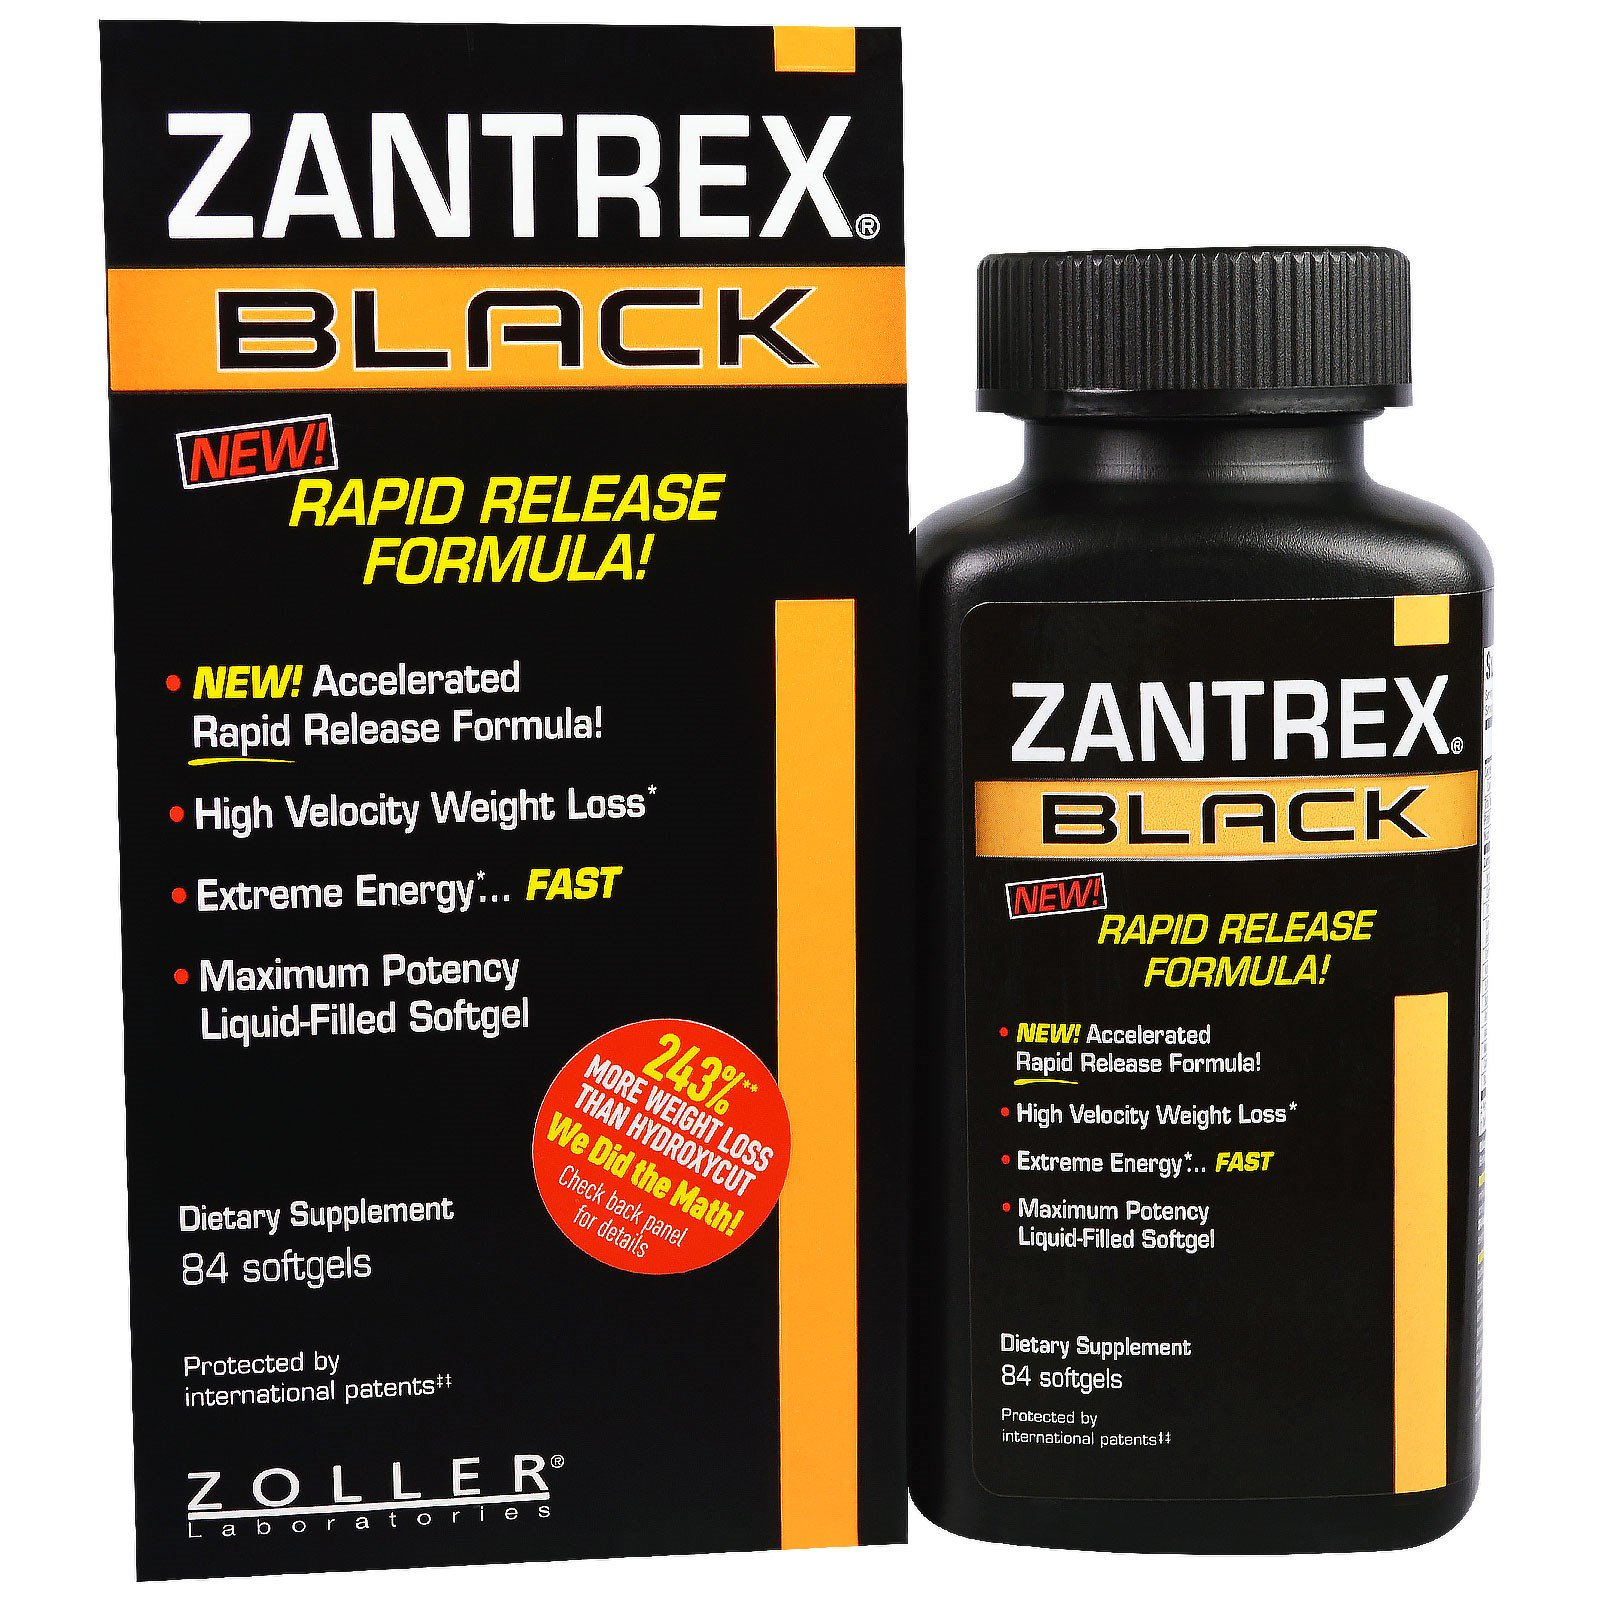 Zantrex Black Review